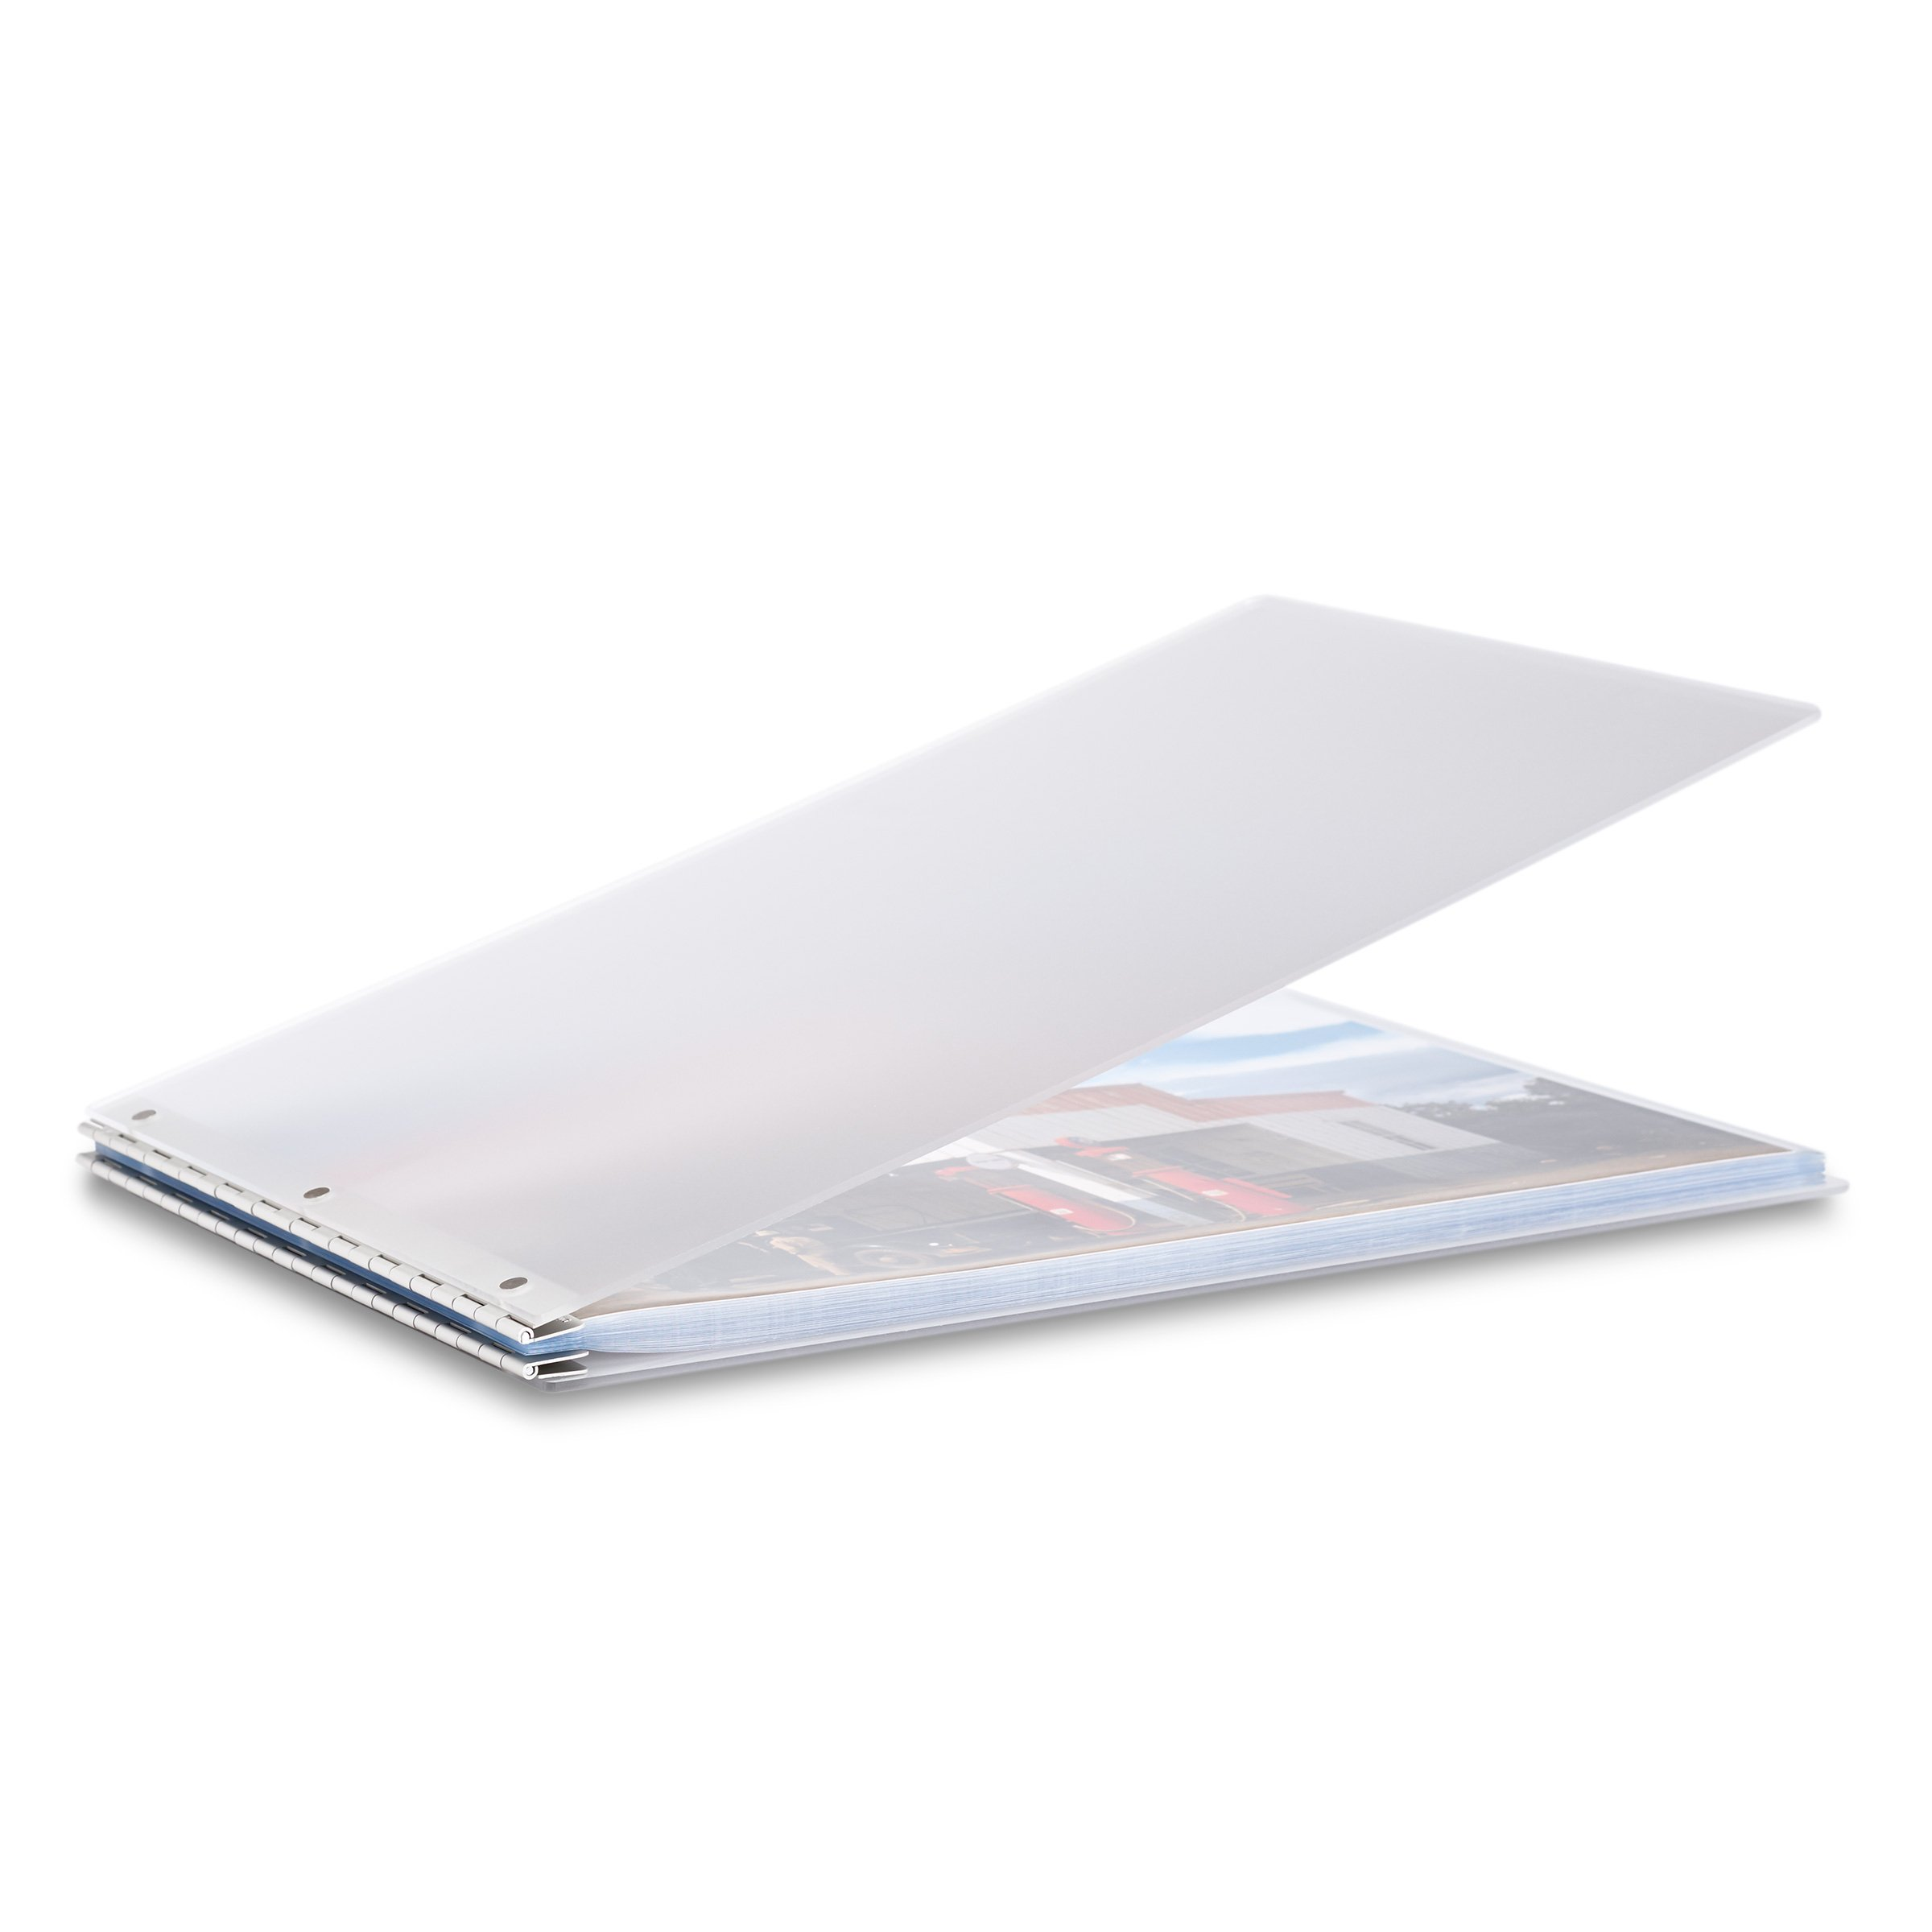 Pina Zangaro Vista 11x17 Landscape Screwpost Binder Mist, Includes 20 Pro-Archive Sheet Protectors (34083)